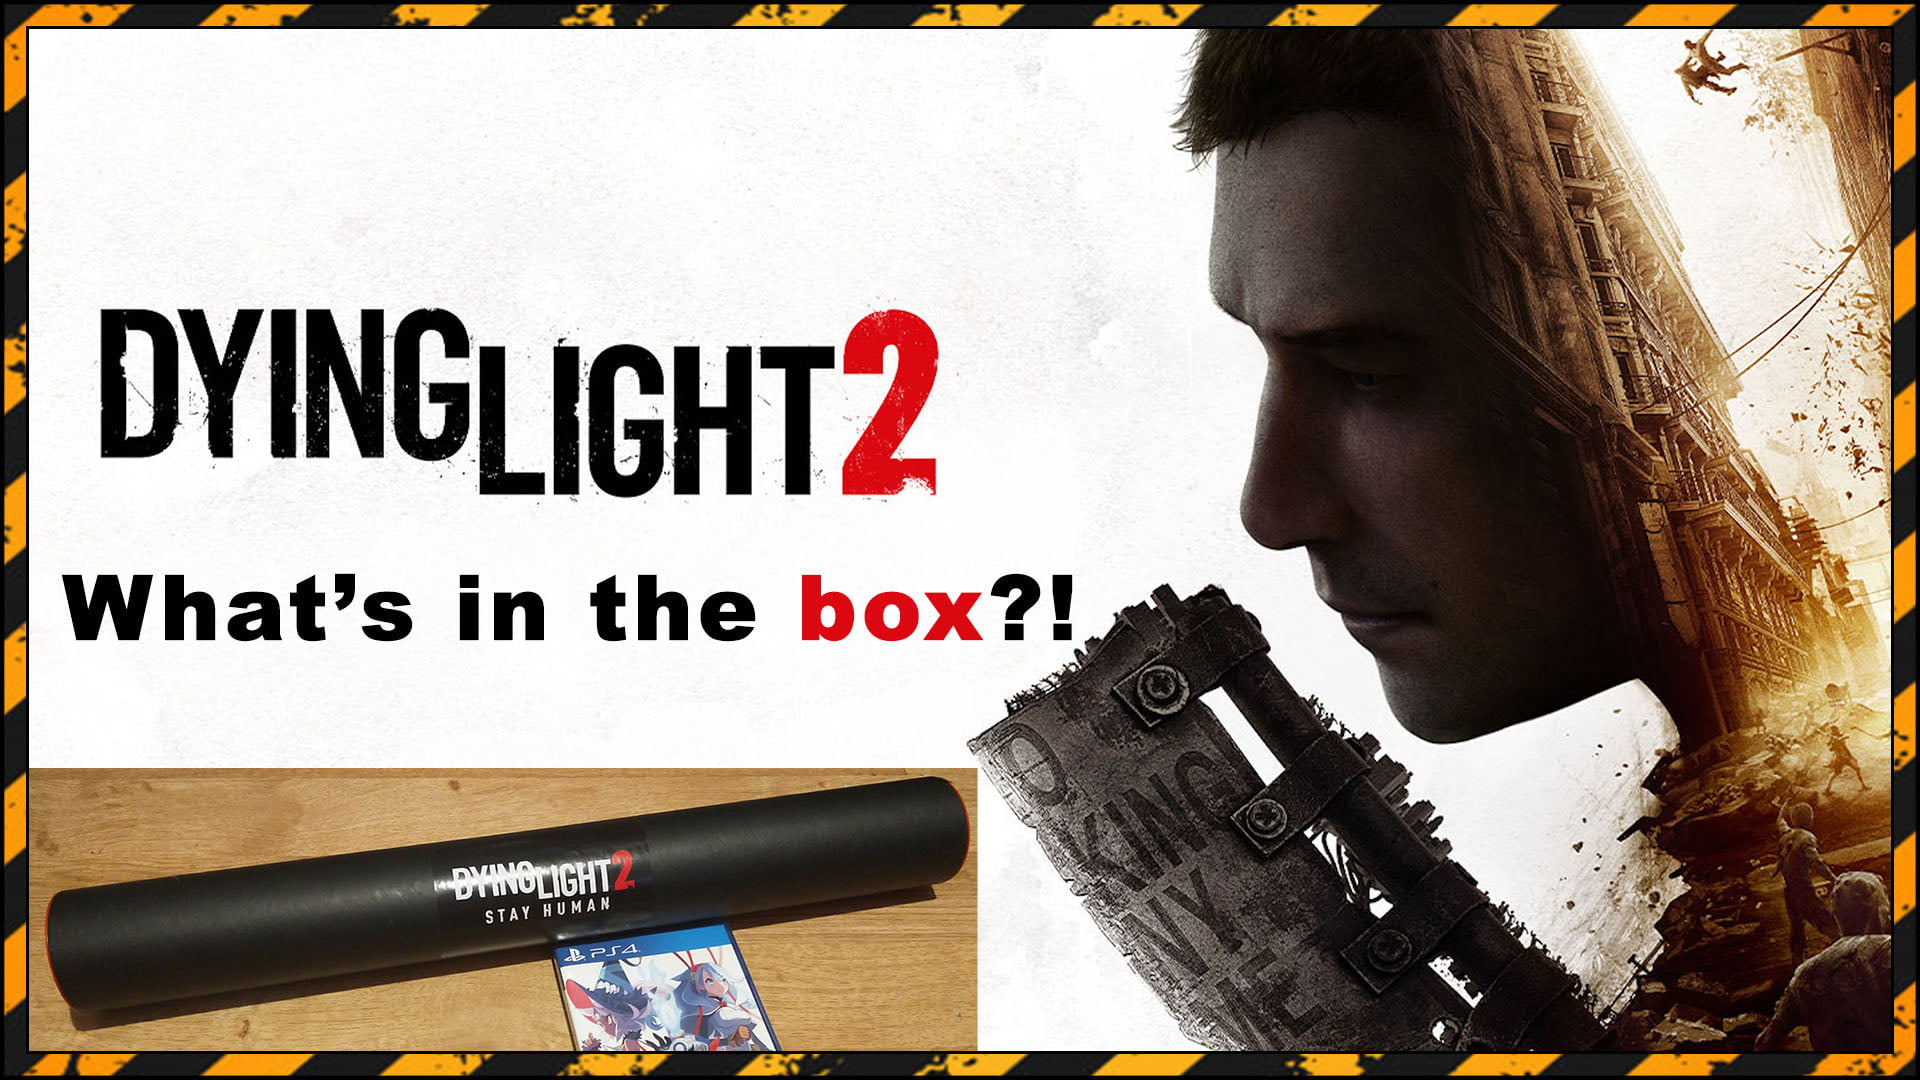 Dying Light 2 Press Ps3